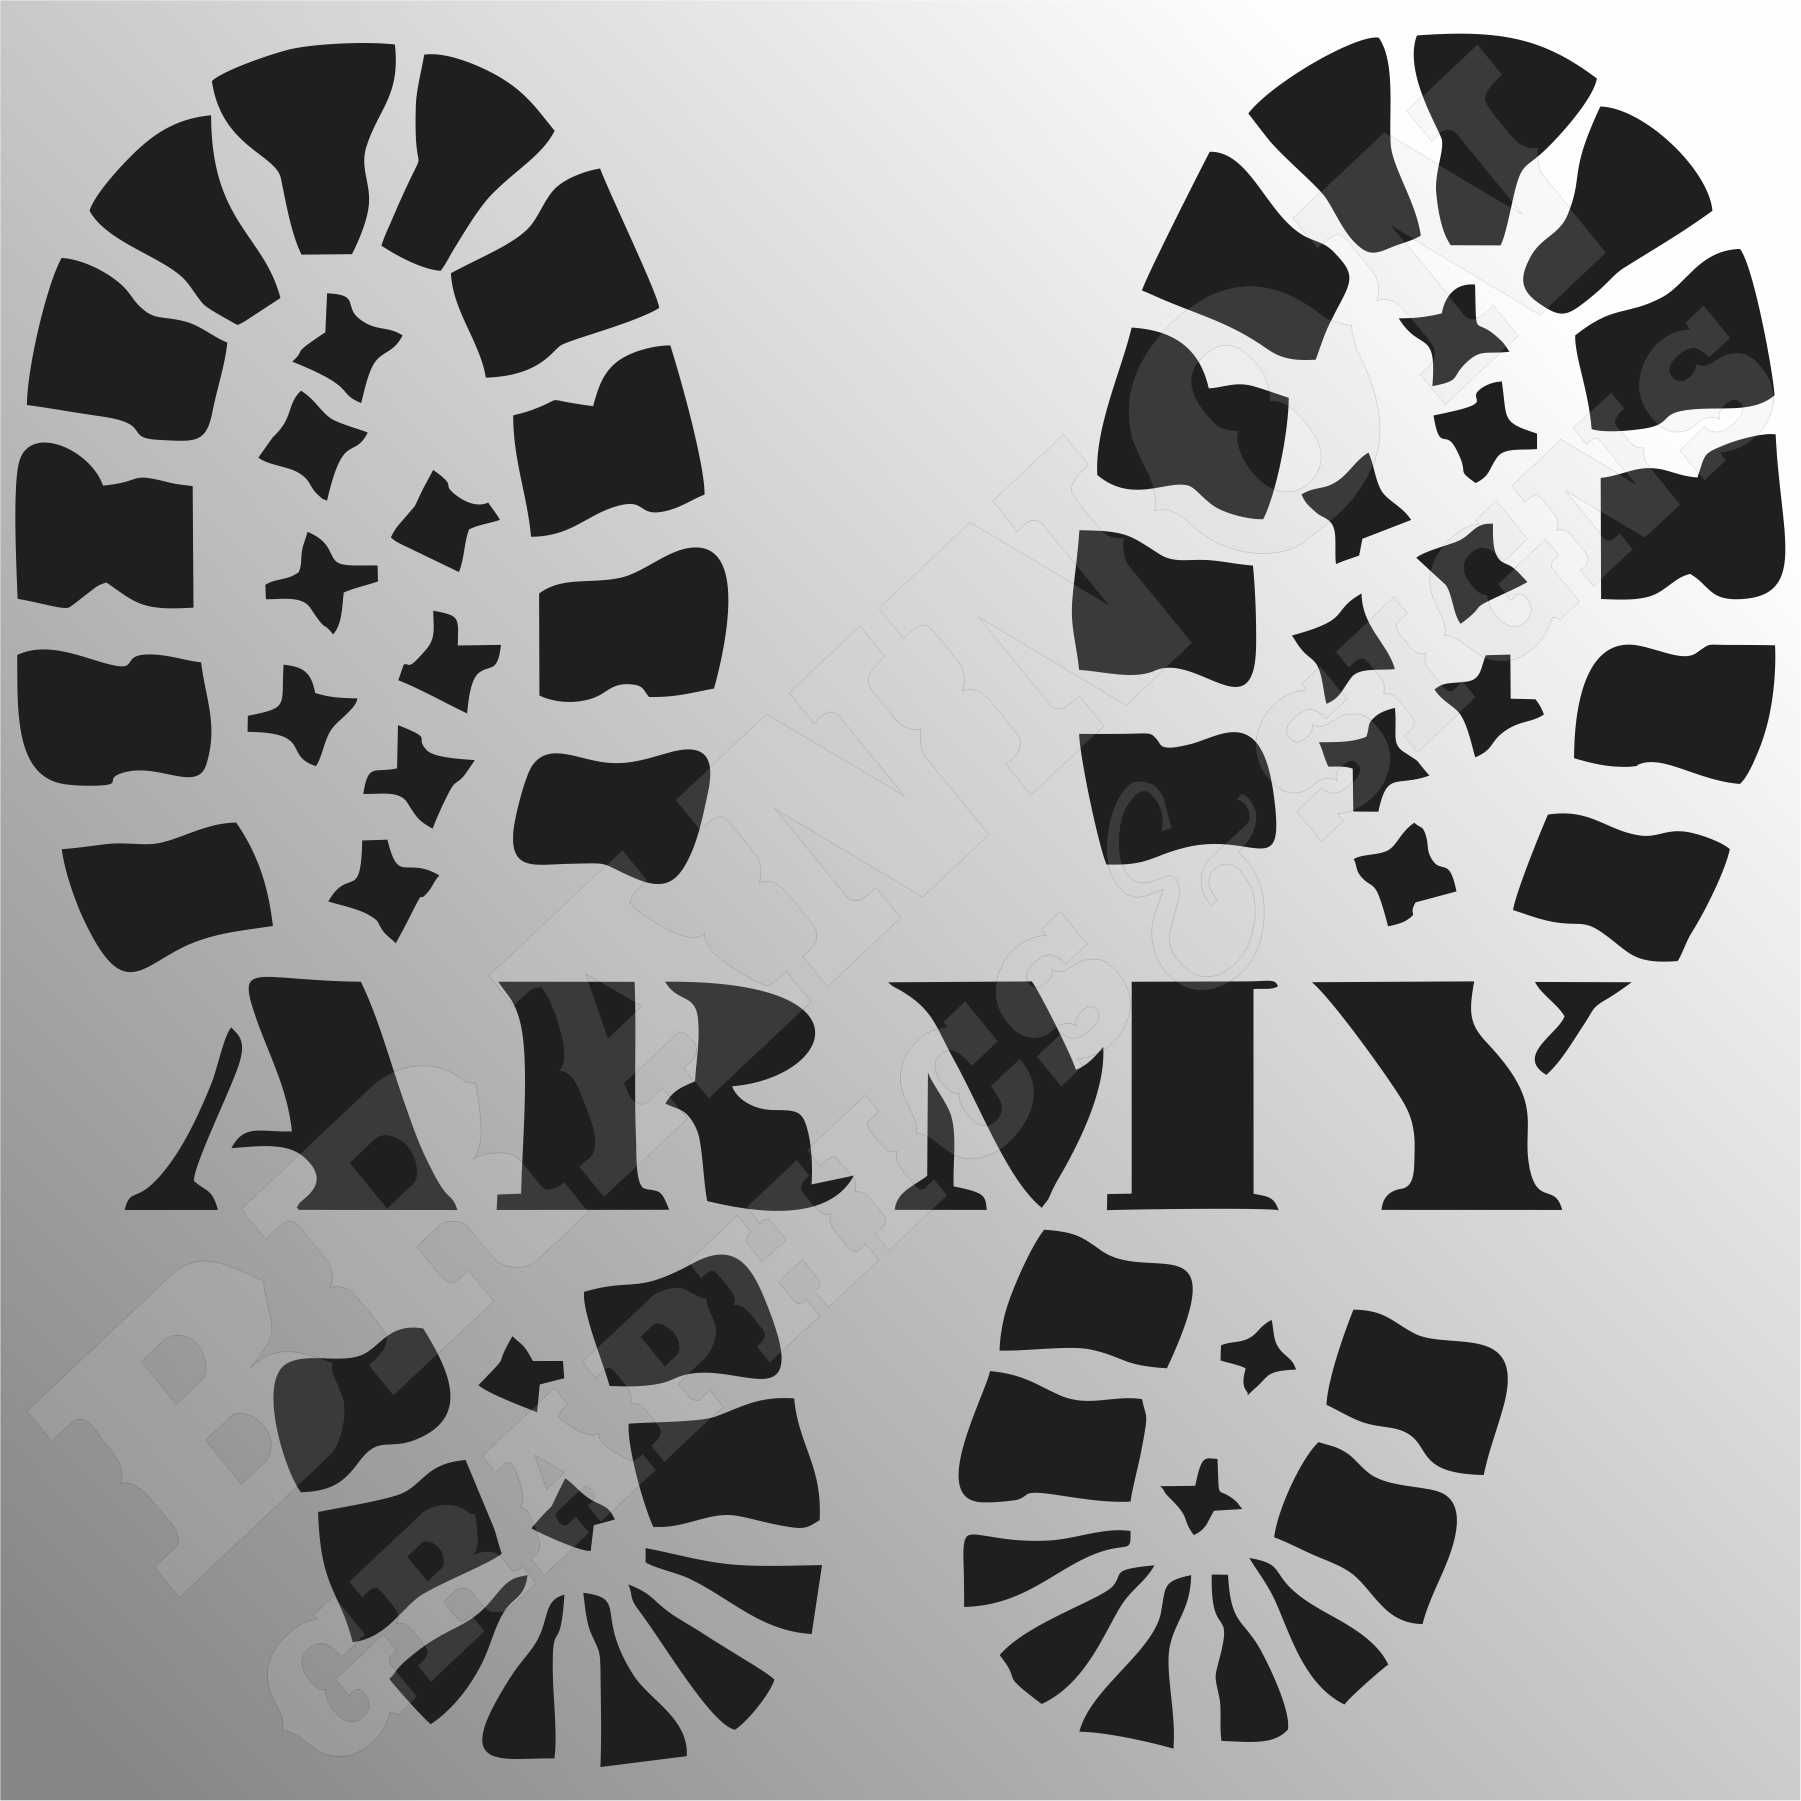 Army Boot Print Logo Military Themed Design That Can Be Made Into Decals Signs Or T Shirts Fully Customizable Let Army Decor Us Army Logo Military Logo